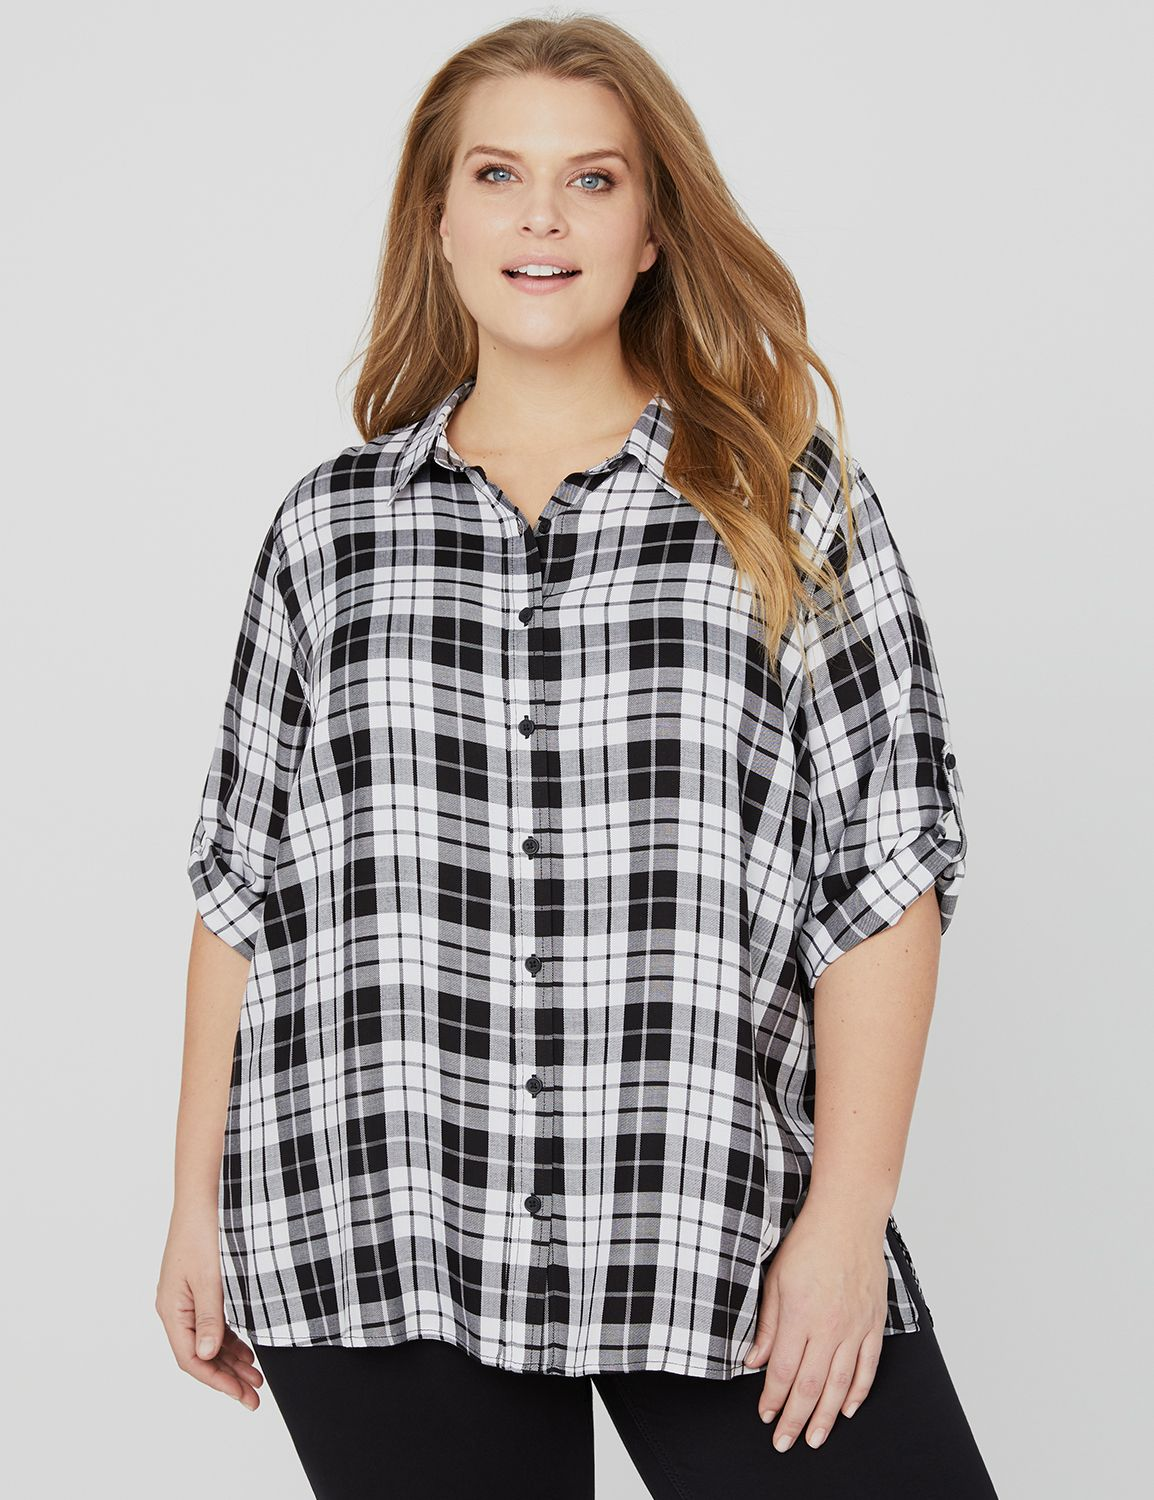 Hybrid Buttonfront Shirt 1093256 3/4 SLV PLAID BACK SHIRT MP-300101755